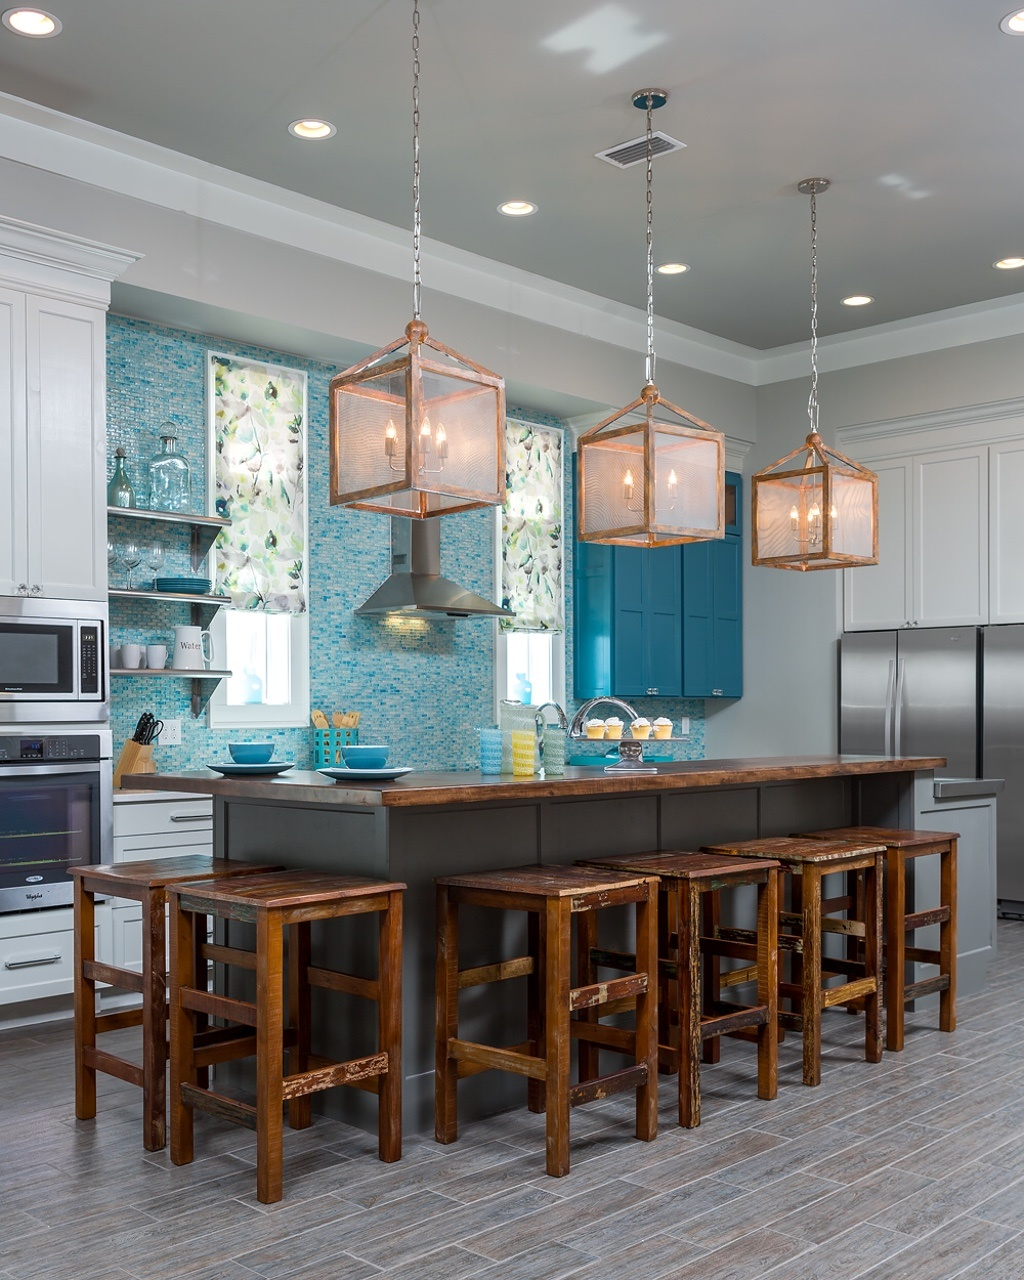 A teal cabinet and counter-to-ceiling glass tile in a similar hue provides a beachy vibe for this otherwise-neutral kitchen. The designer used her budget wisely to add upgrades such as two sinks, a built-in icemaker and the glass tiles.